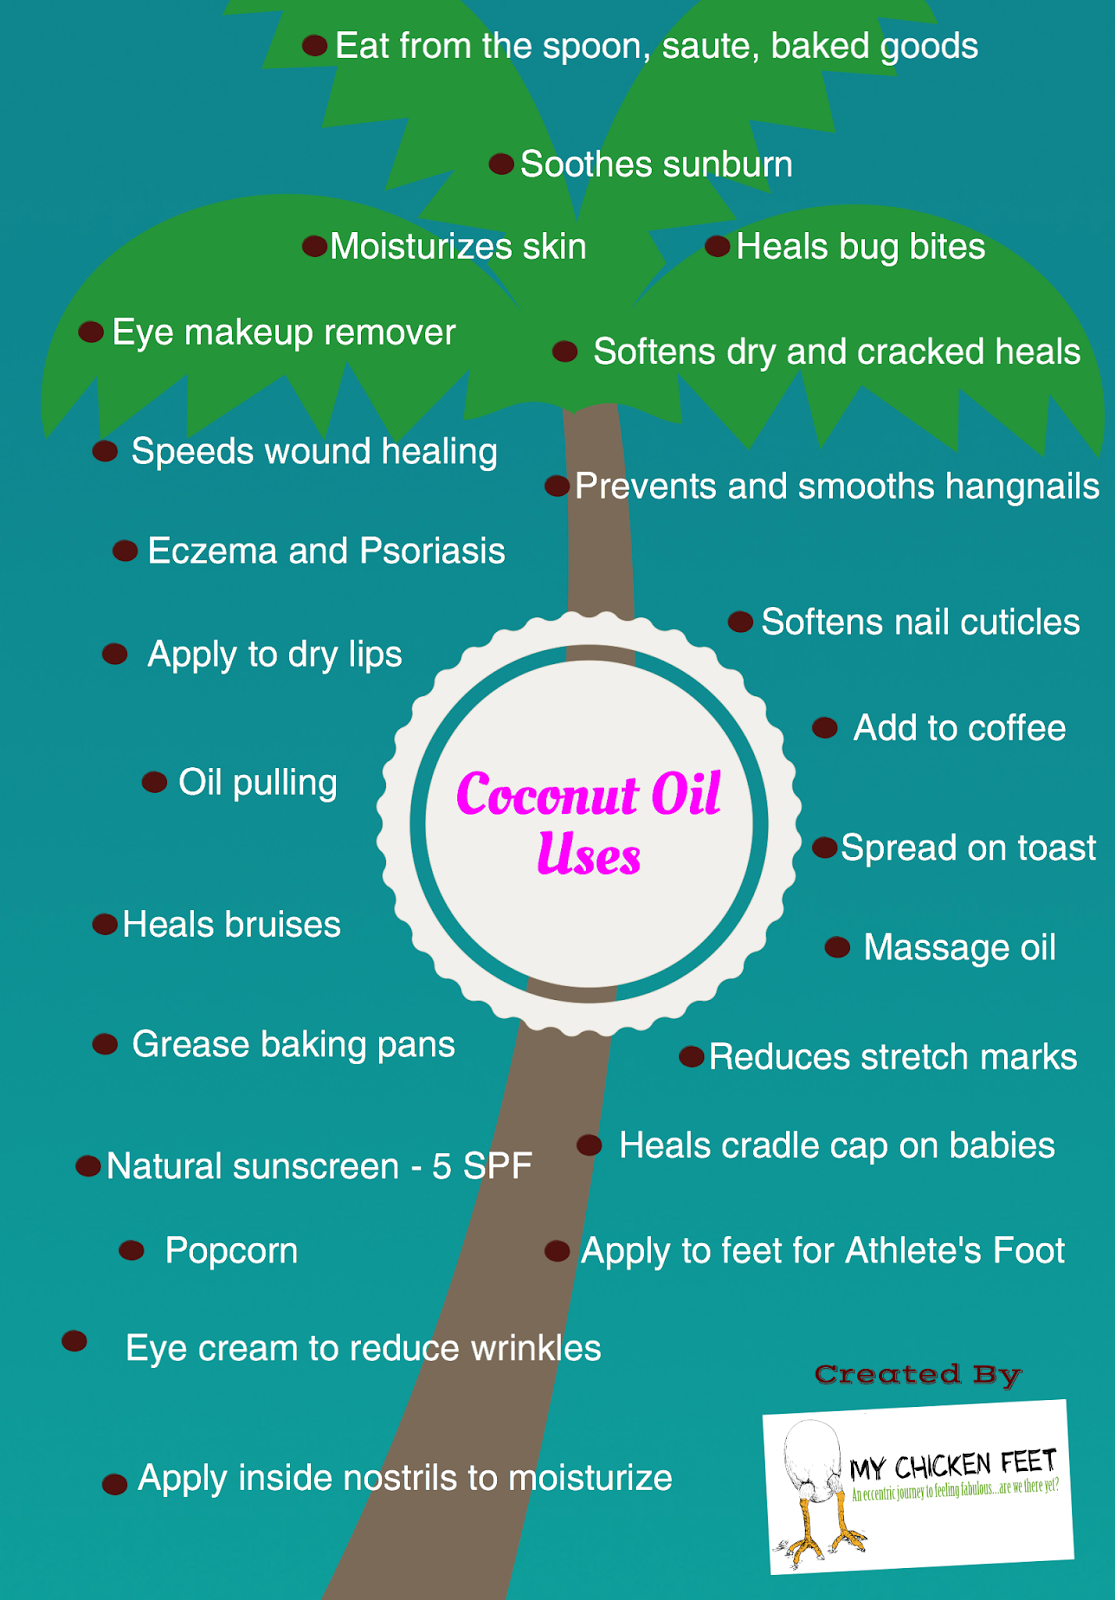 My Chicken Feet: CRaZY for Coconut Oil